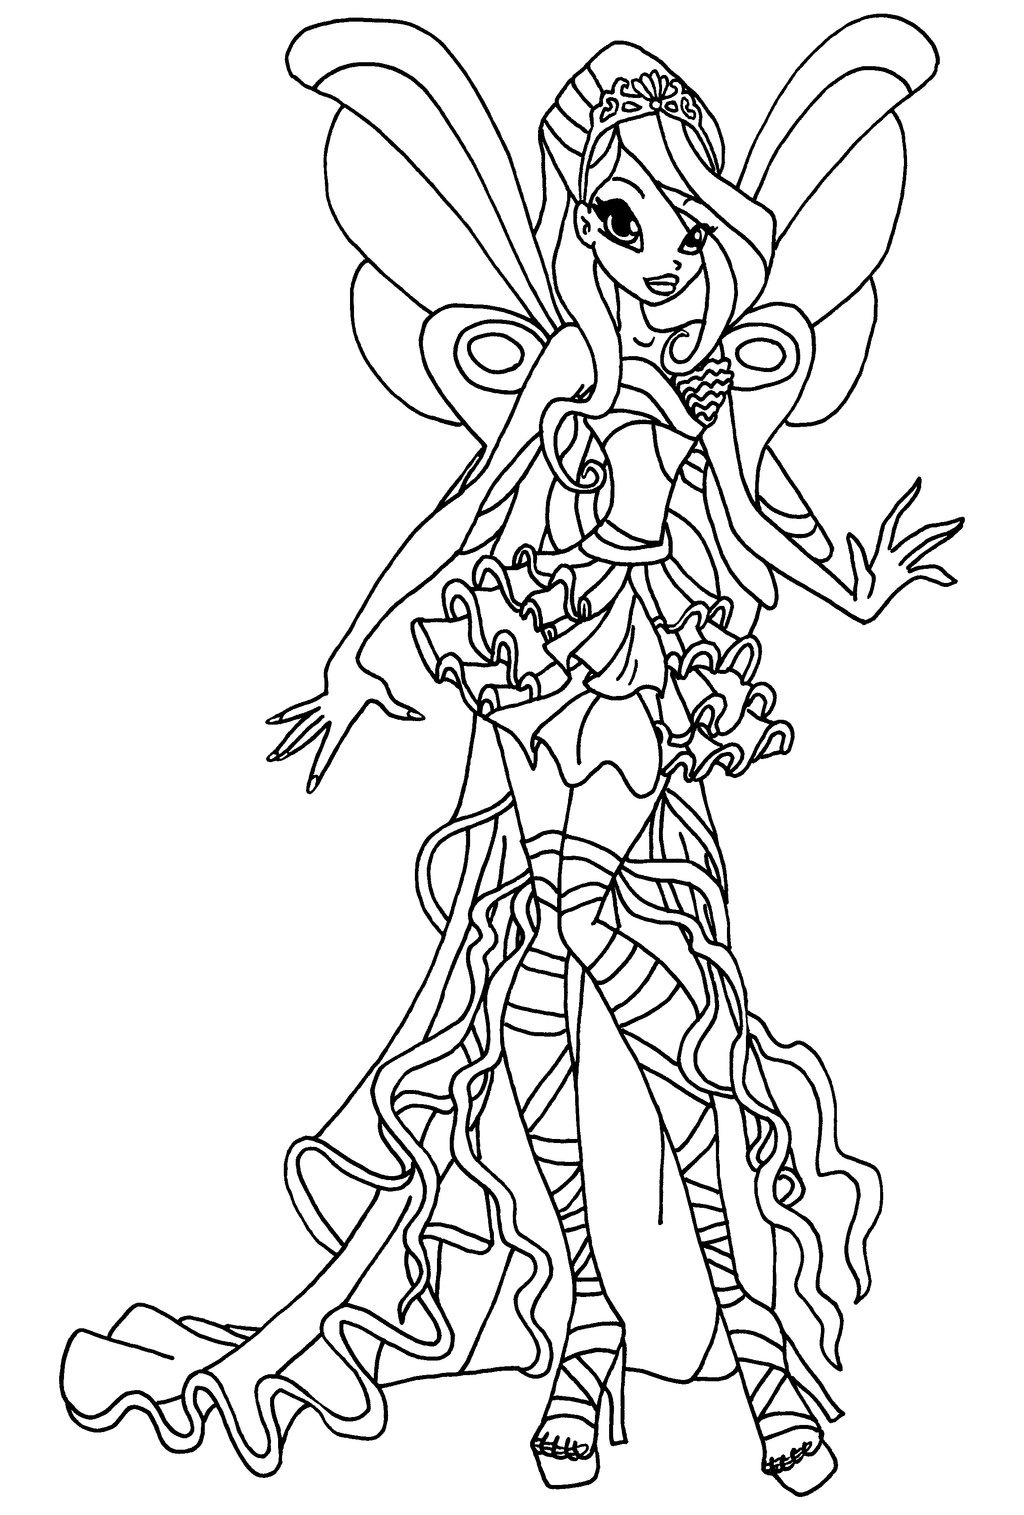 Coloriage bloom harmonix winx imprimer - Coloriage winx bloom ...